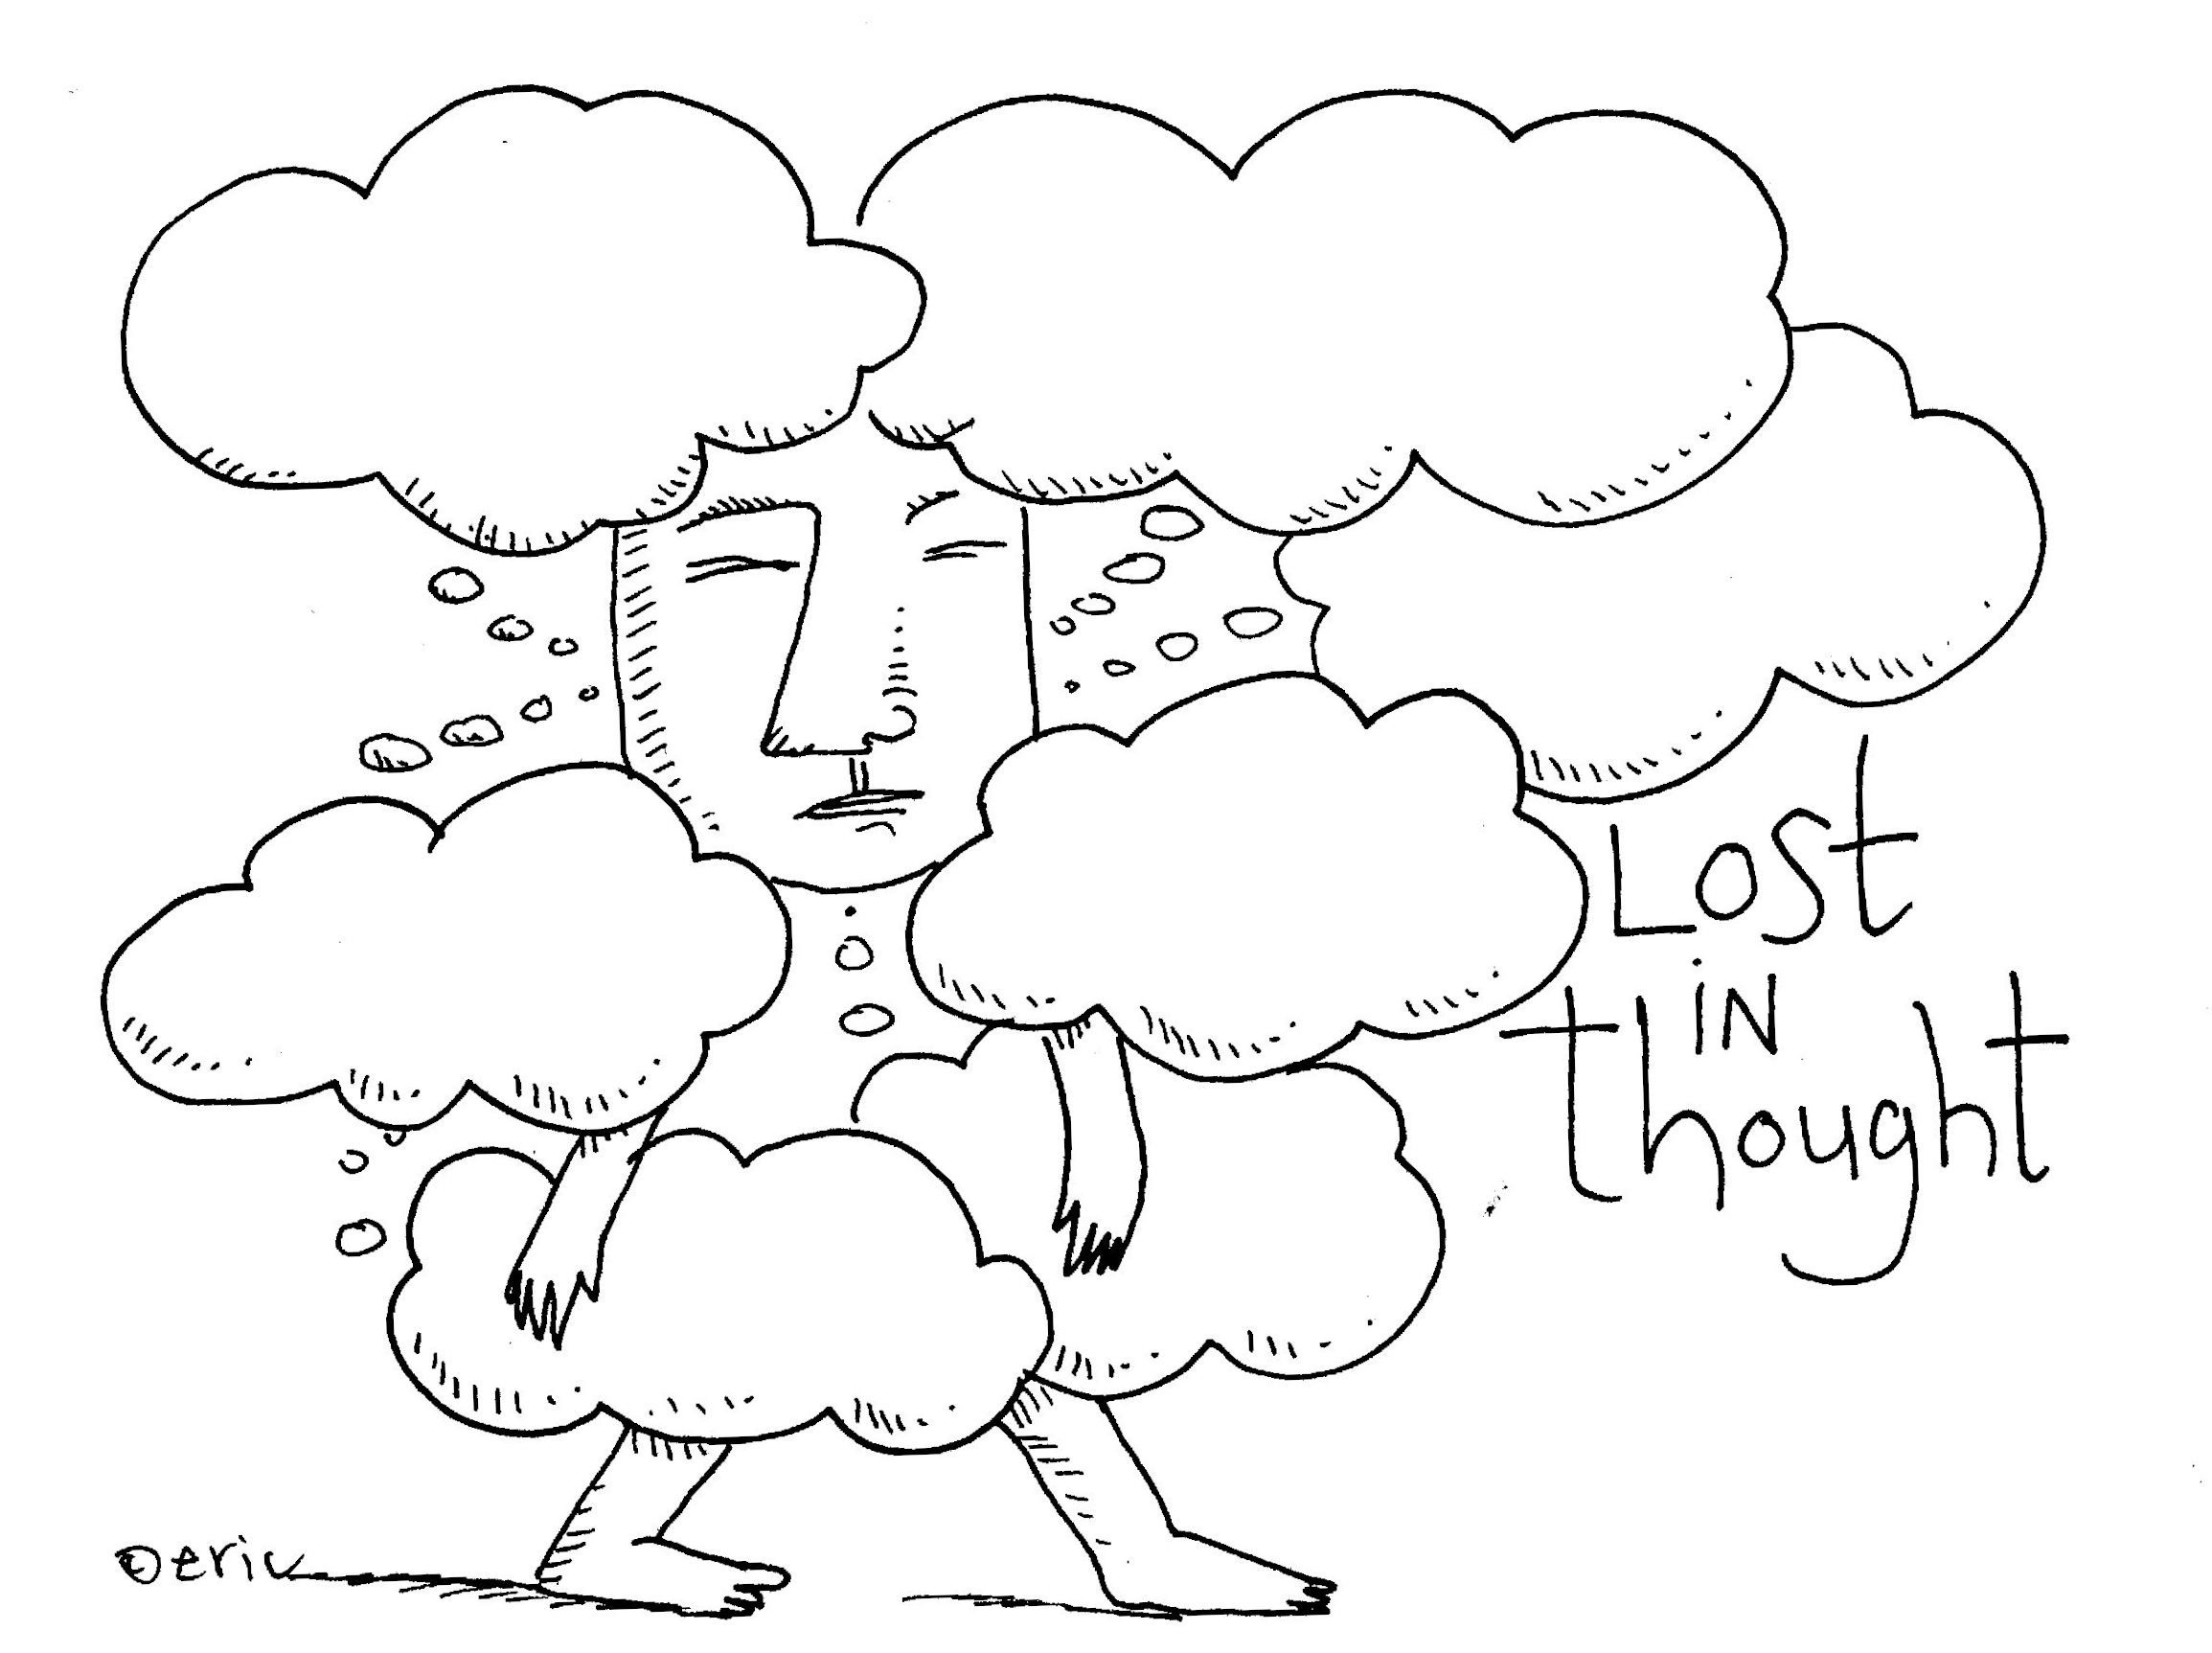 How To Kill A Thought In A Good Way More On Mindfulness